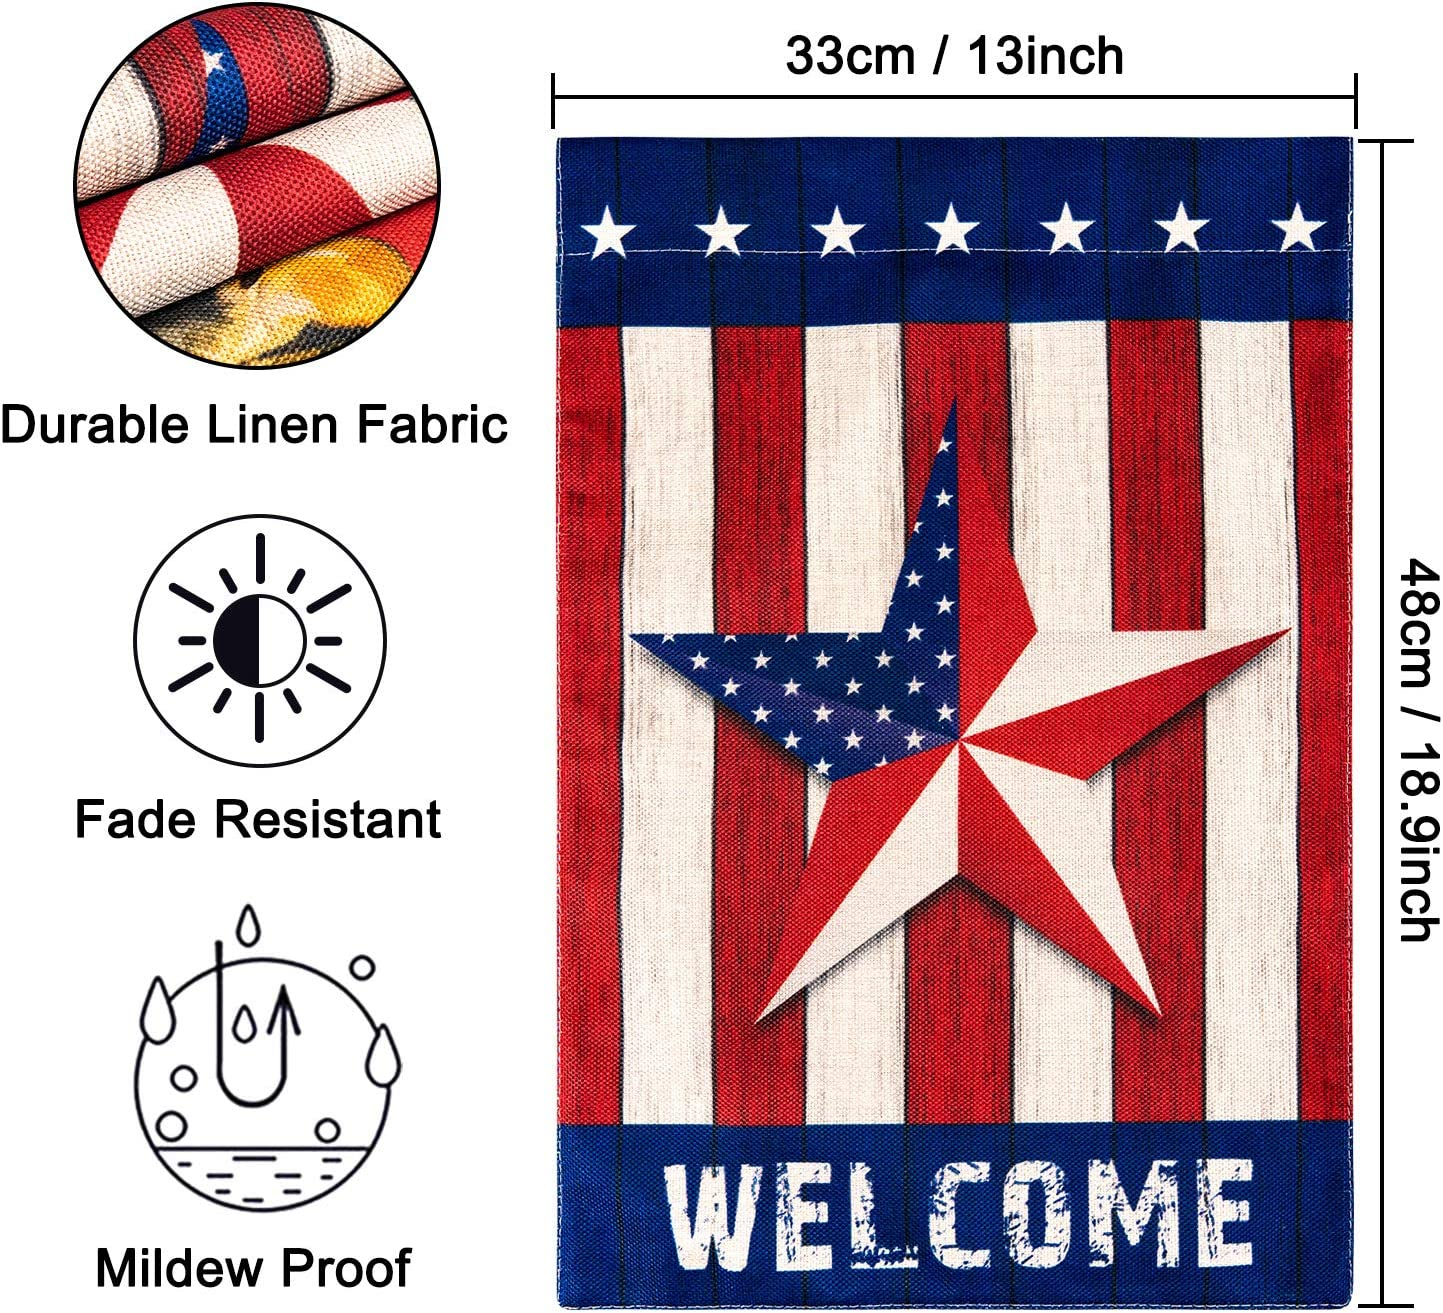 Amazon Com Whaline Patriotic Garden Flag American Stripe And Star Yard Flag Double Sided Burlap Outdoor Flag With Windproof Clip For 4th Of July Indepedence Day Memorial Day Home Farmhouse 13 X 18